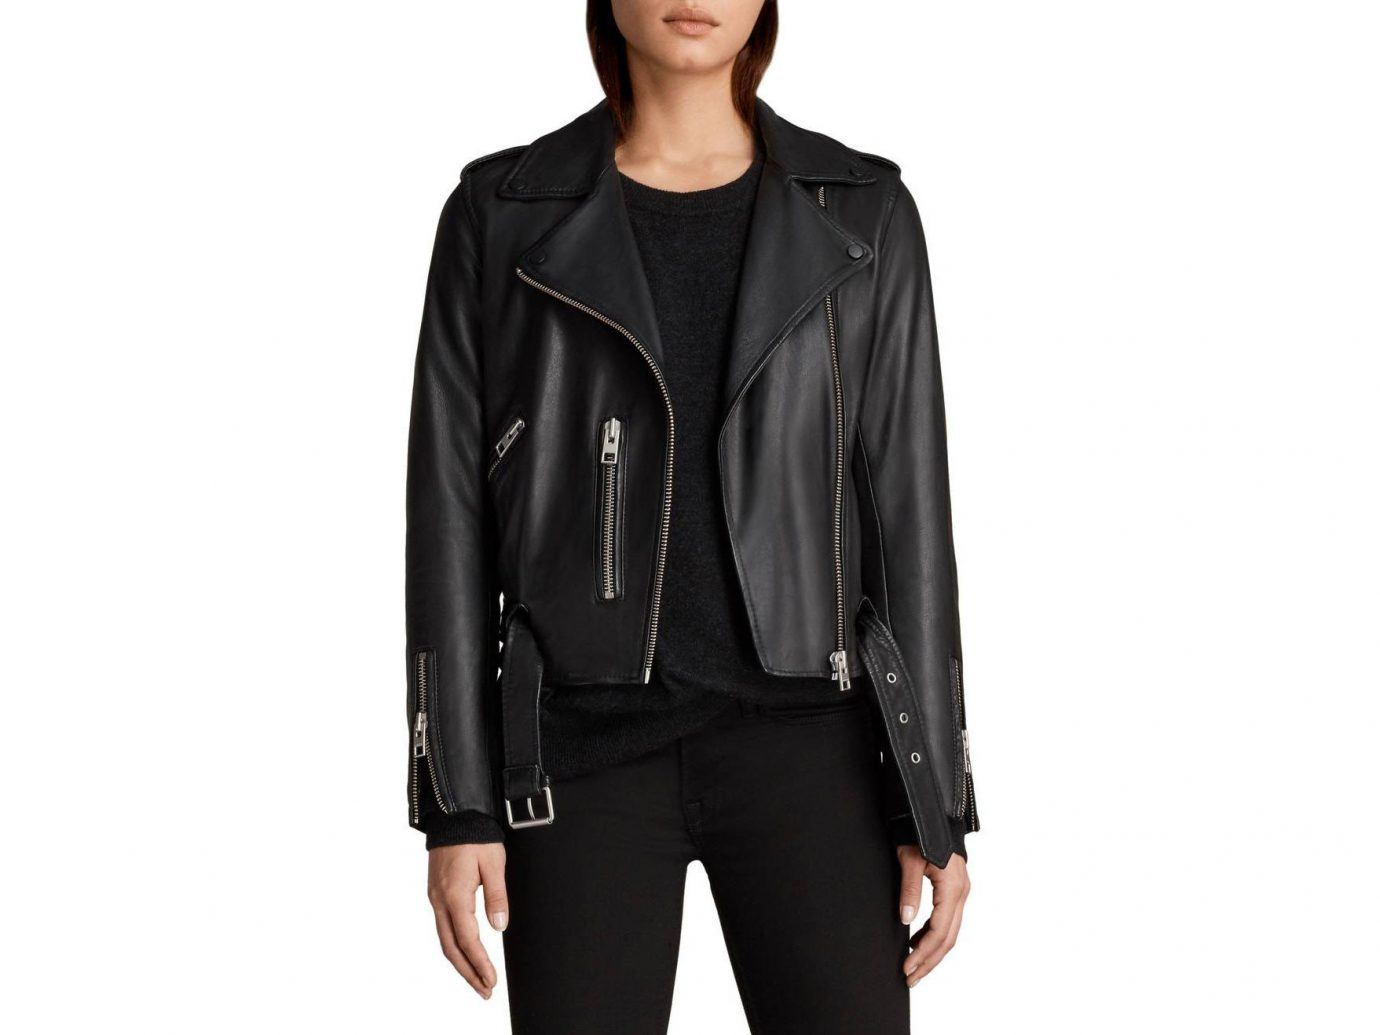 Packing Tips Style + Design Travel Shop person clothing standing jacket suit posing leather jacket wearing leather shoulder sleeve coat fashion model dressed